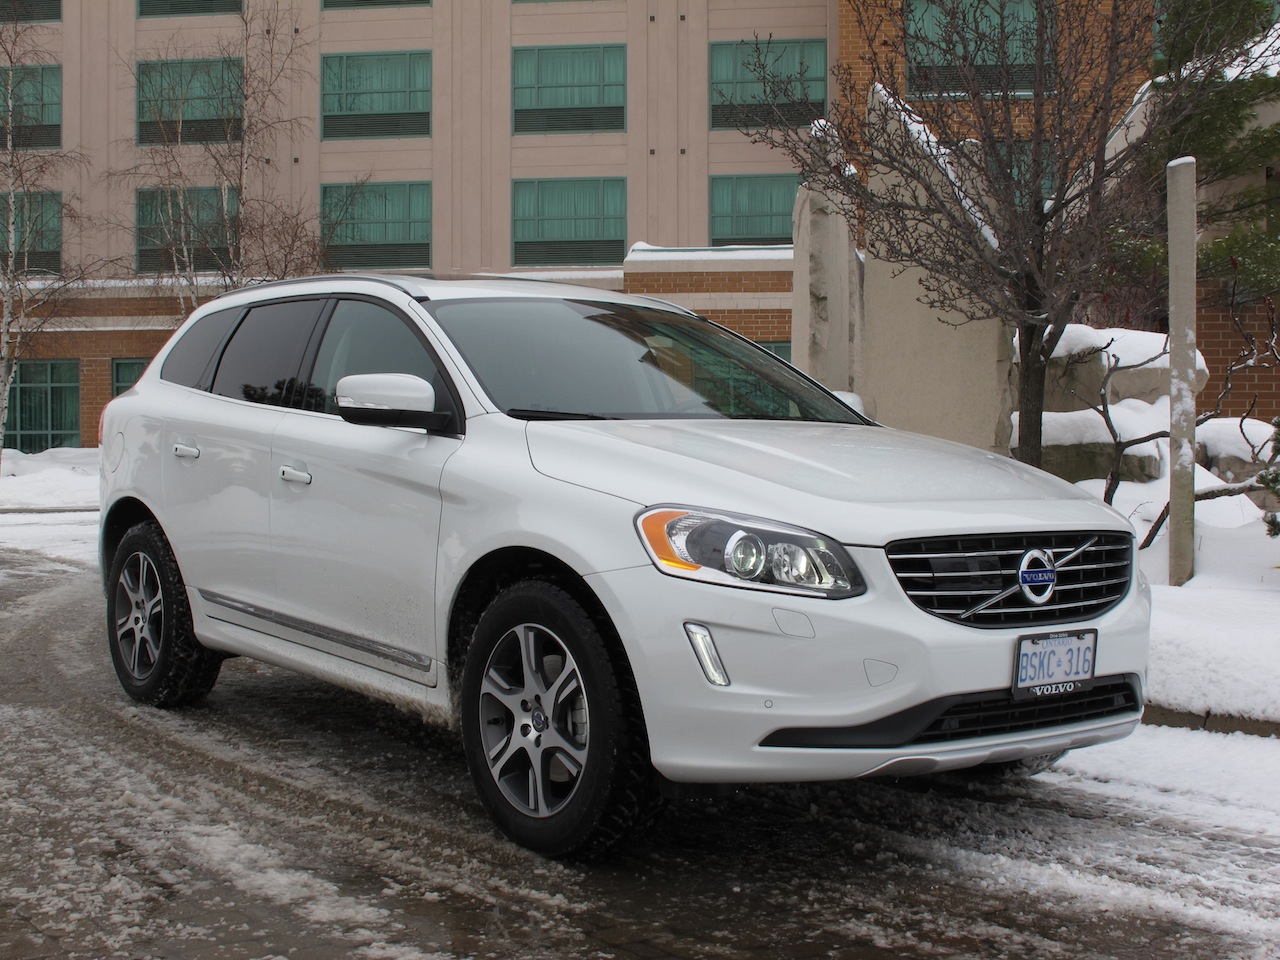 Wonderful 2014 Volvo Xc60 Front Side 2014 Volvo Xc60 Review Specs Prices 1280 x 960 · 388 kB · jpeg